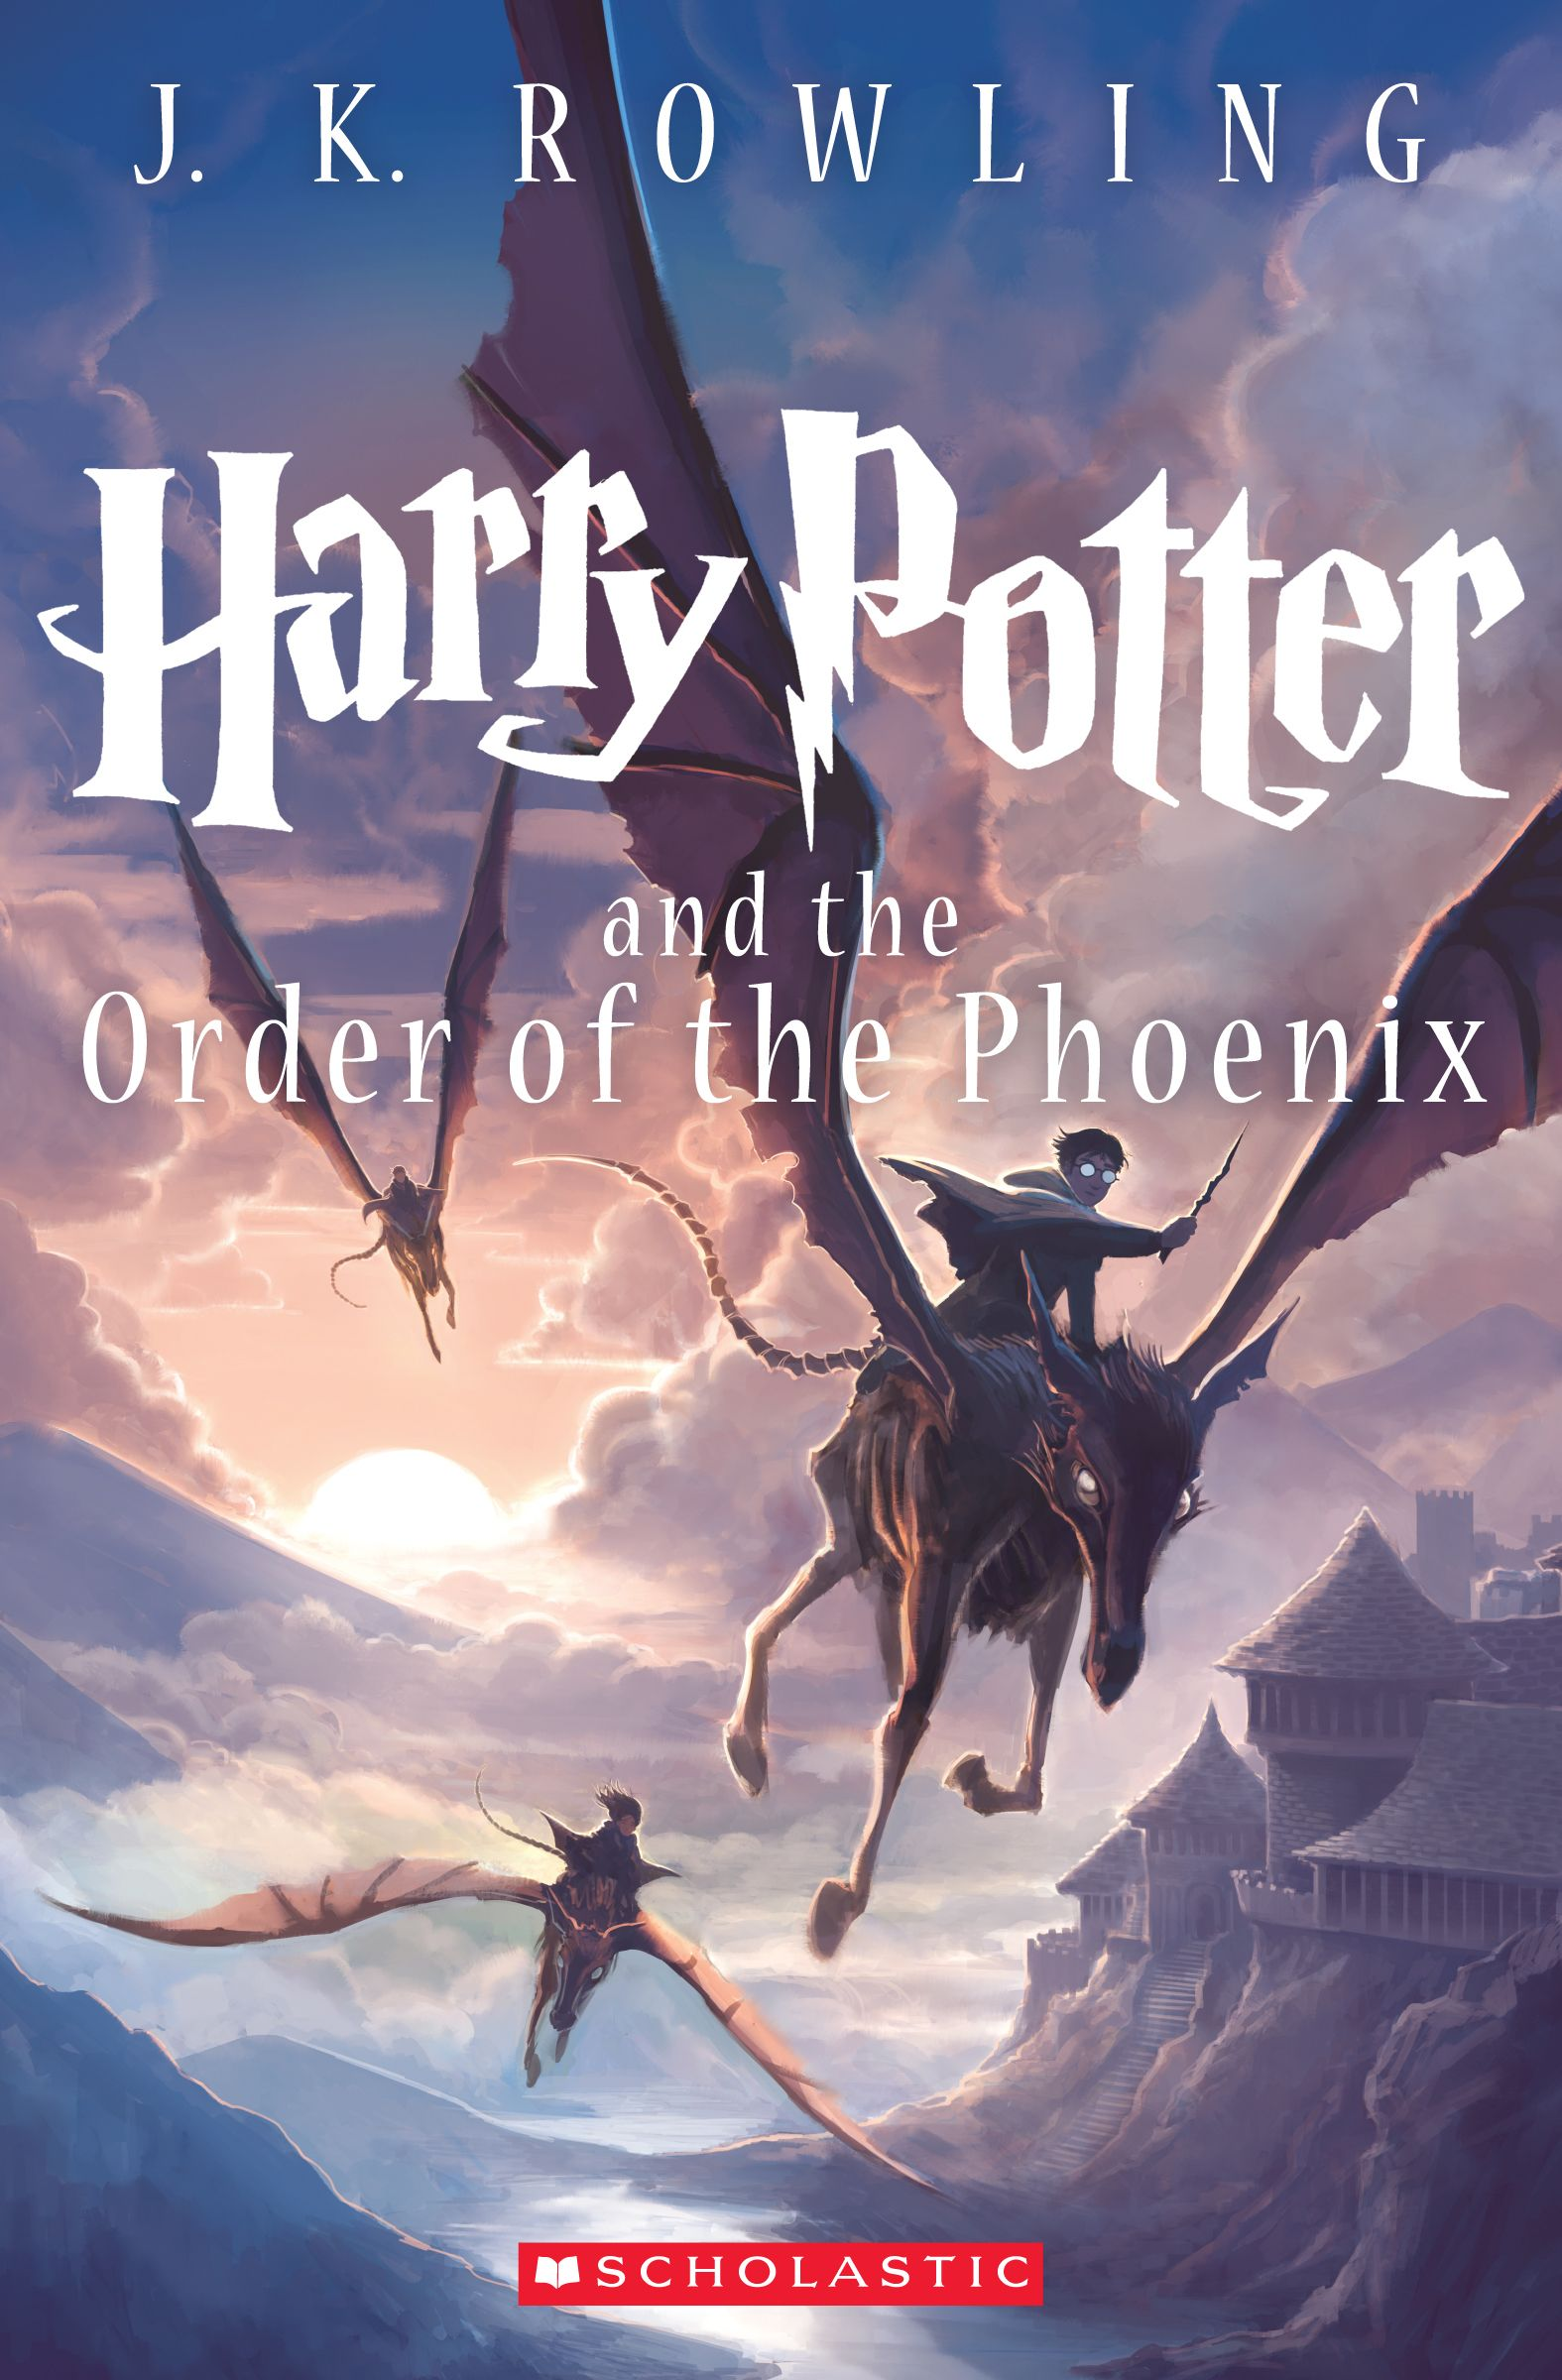 Download Pdf Harry Potter And The Sorcerers Stone The Illustrated Edition Harry Potter Boo Harry Potter Illustrations Rowling Harry Potter Harry Potter Books